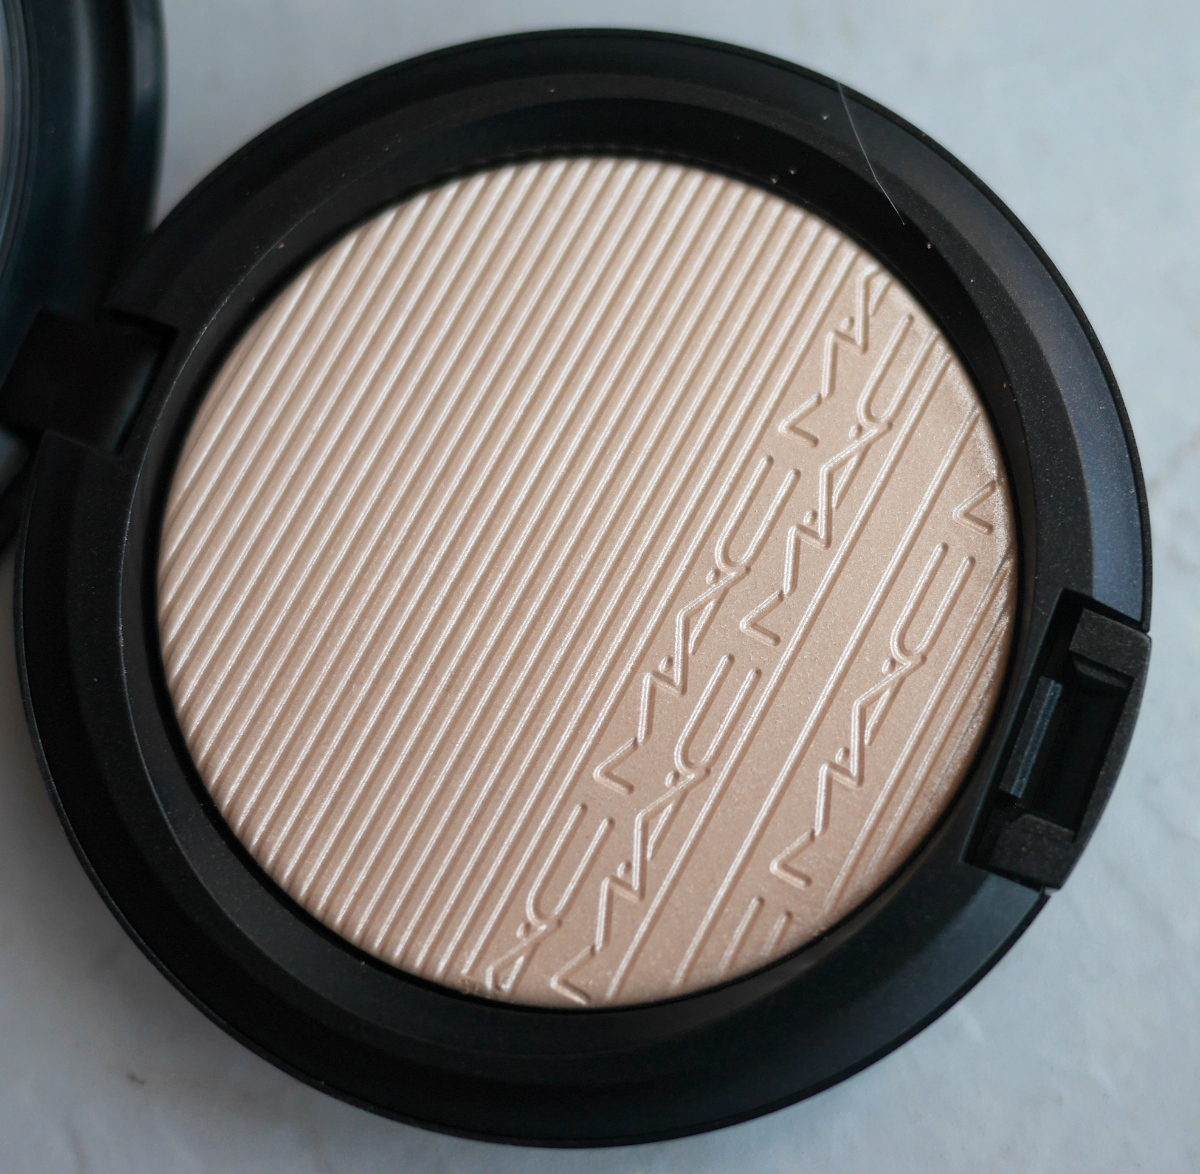 MAC Cosmetics Extra Dimension Skinfinish Doublegleam review